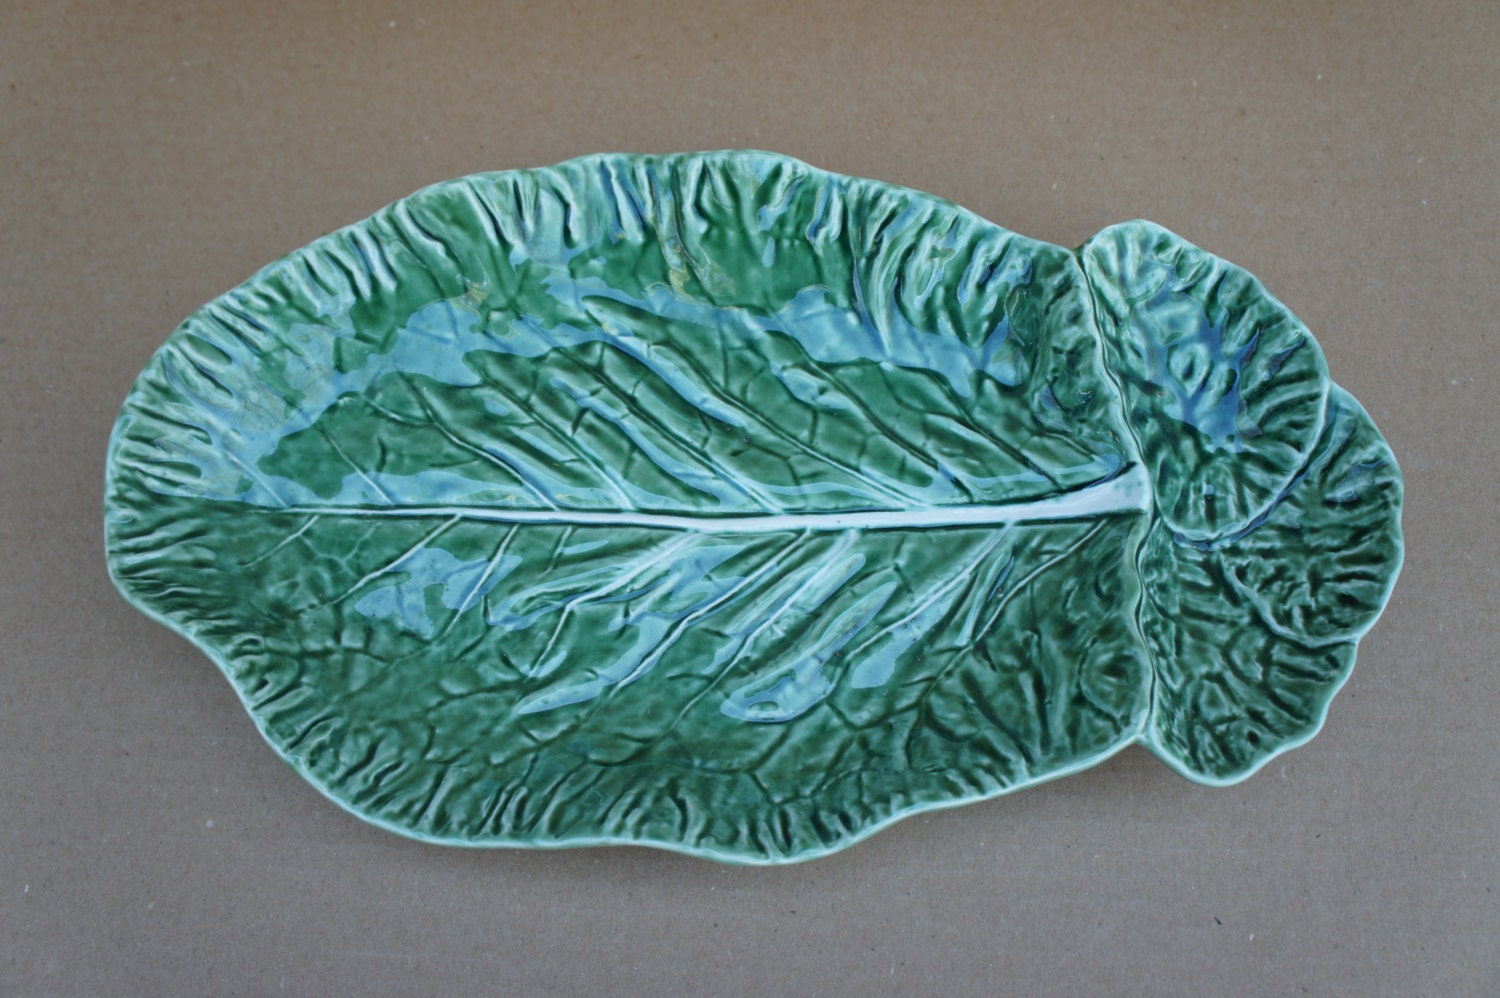 Vintage bordallo pinheiro portugal majolica green cabbage leaf - Bordallo pinheiro portugal ...